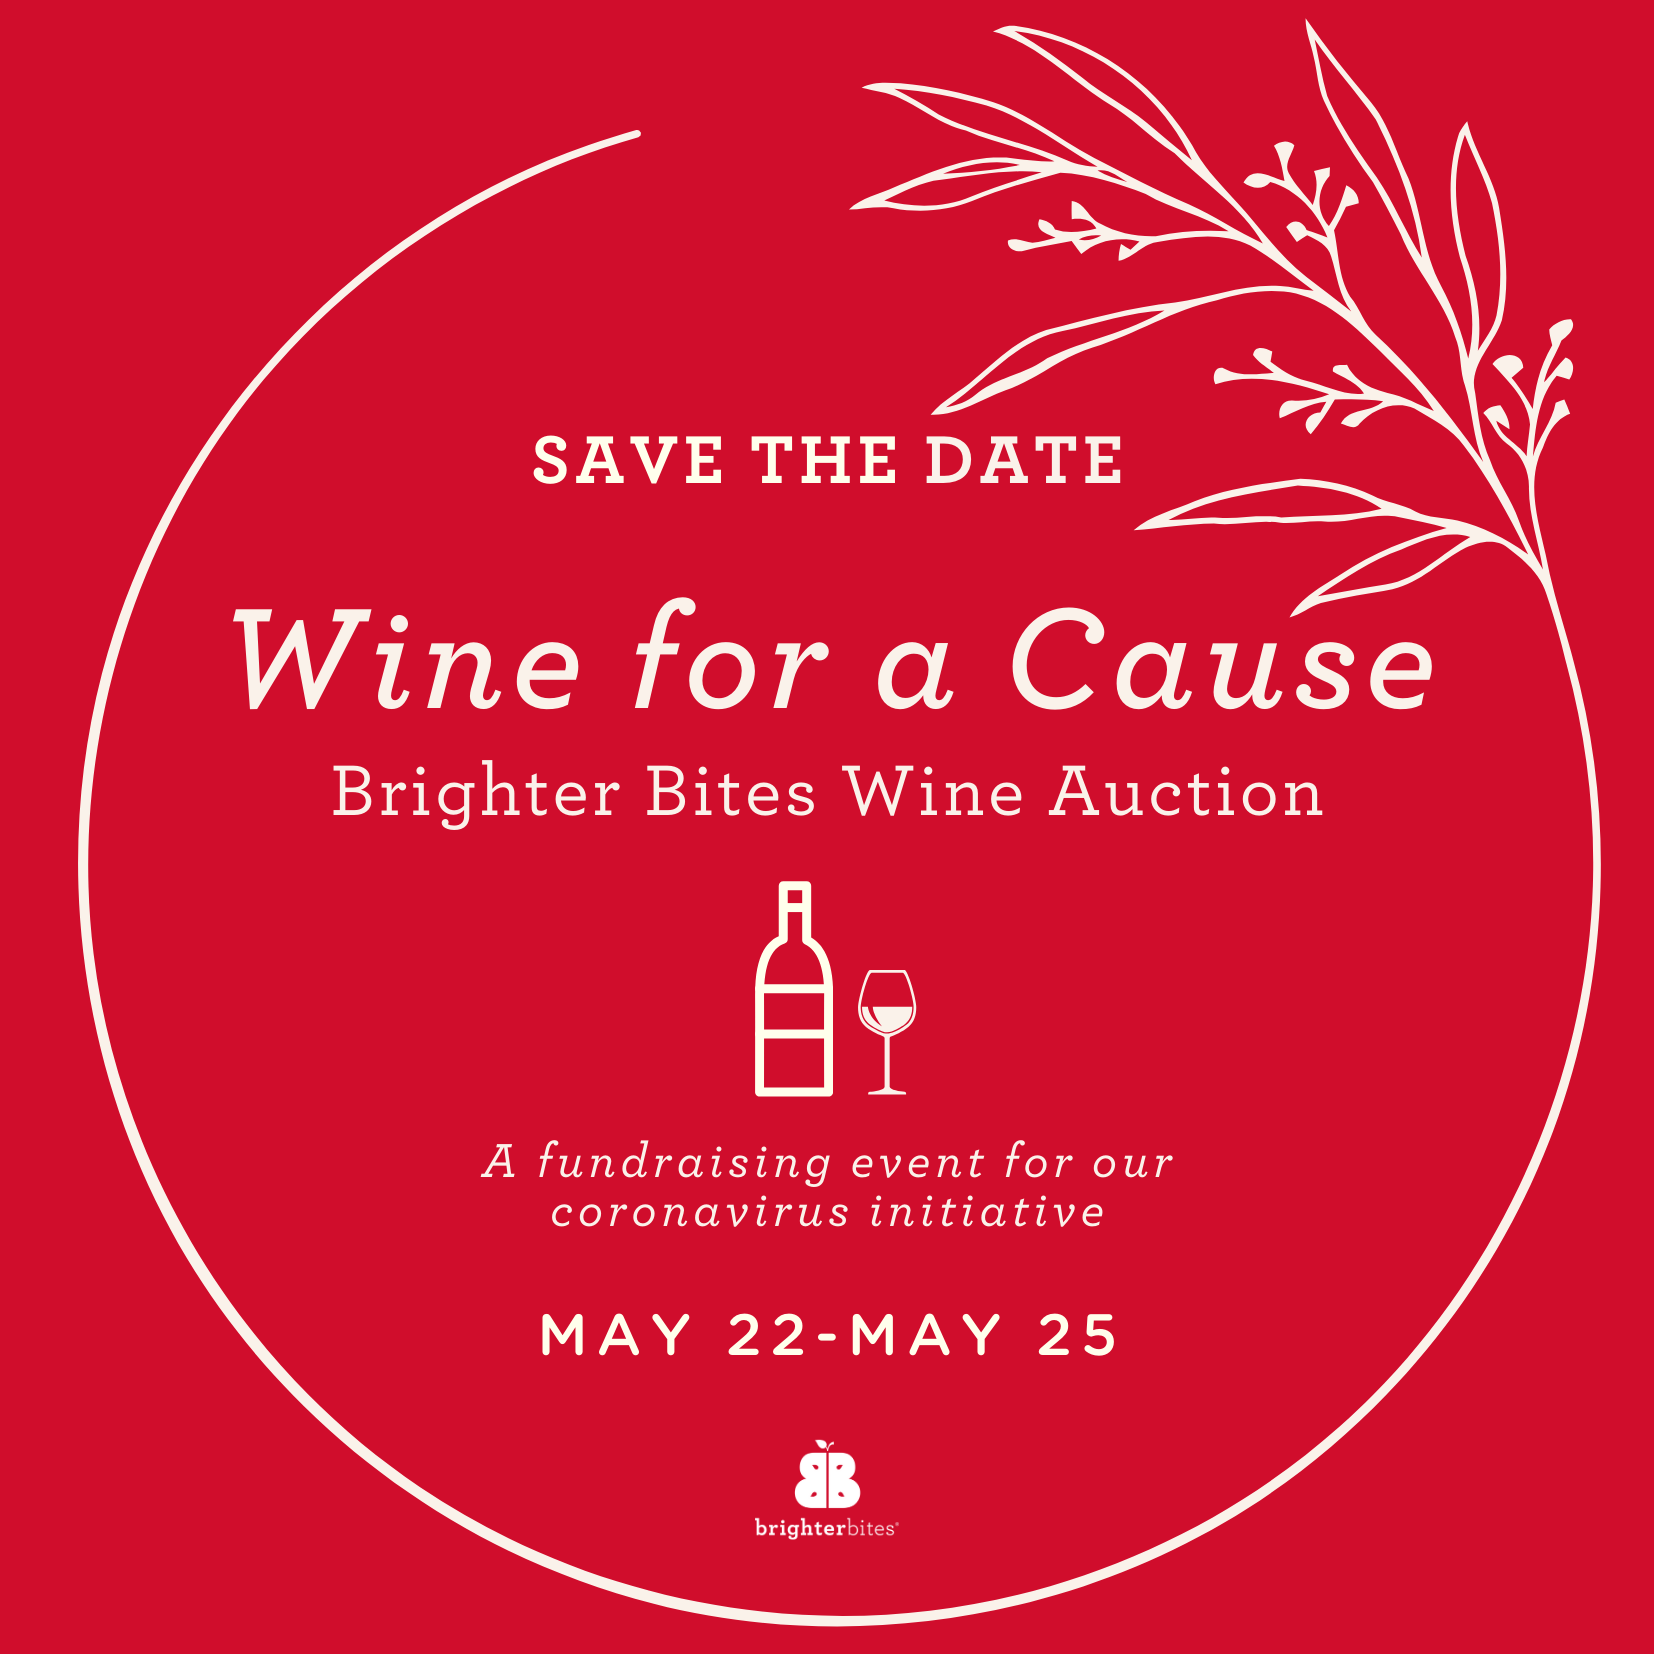 Save the date for Wine for a Cause